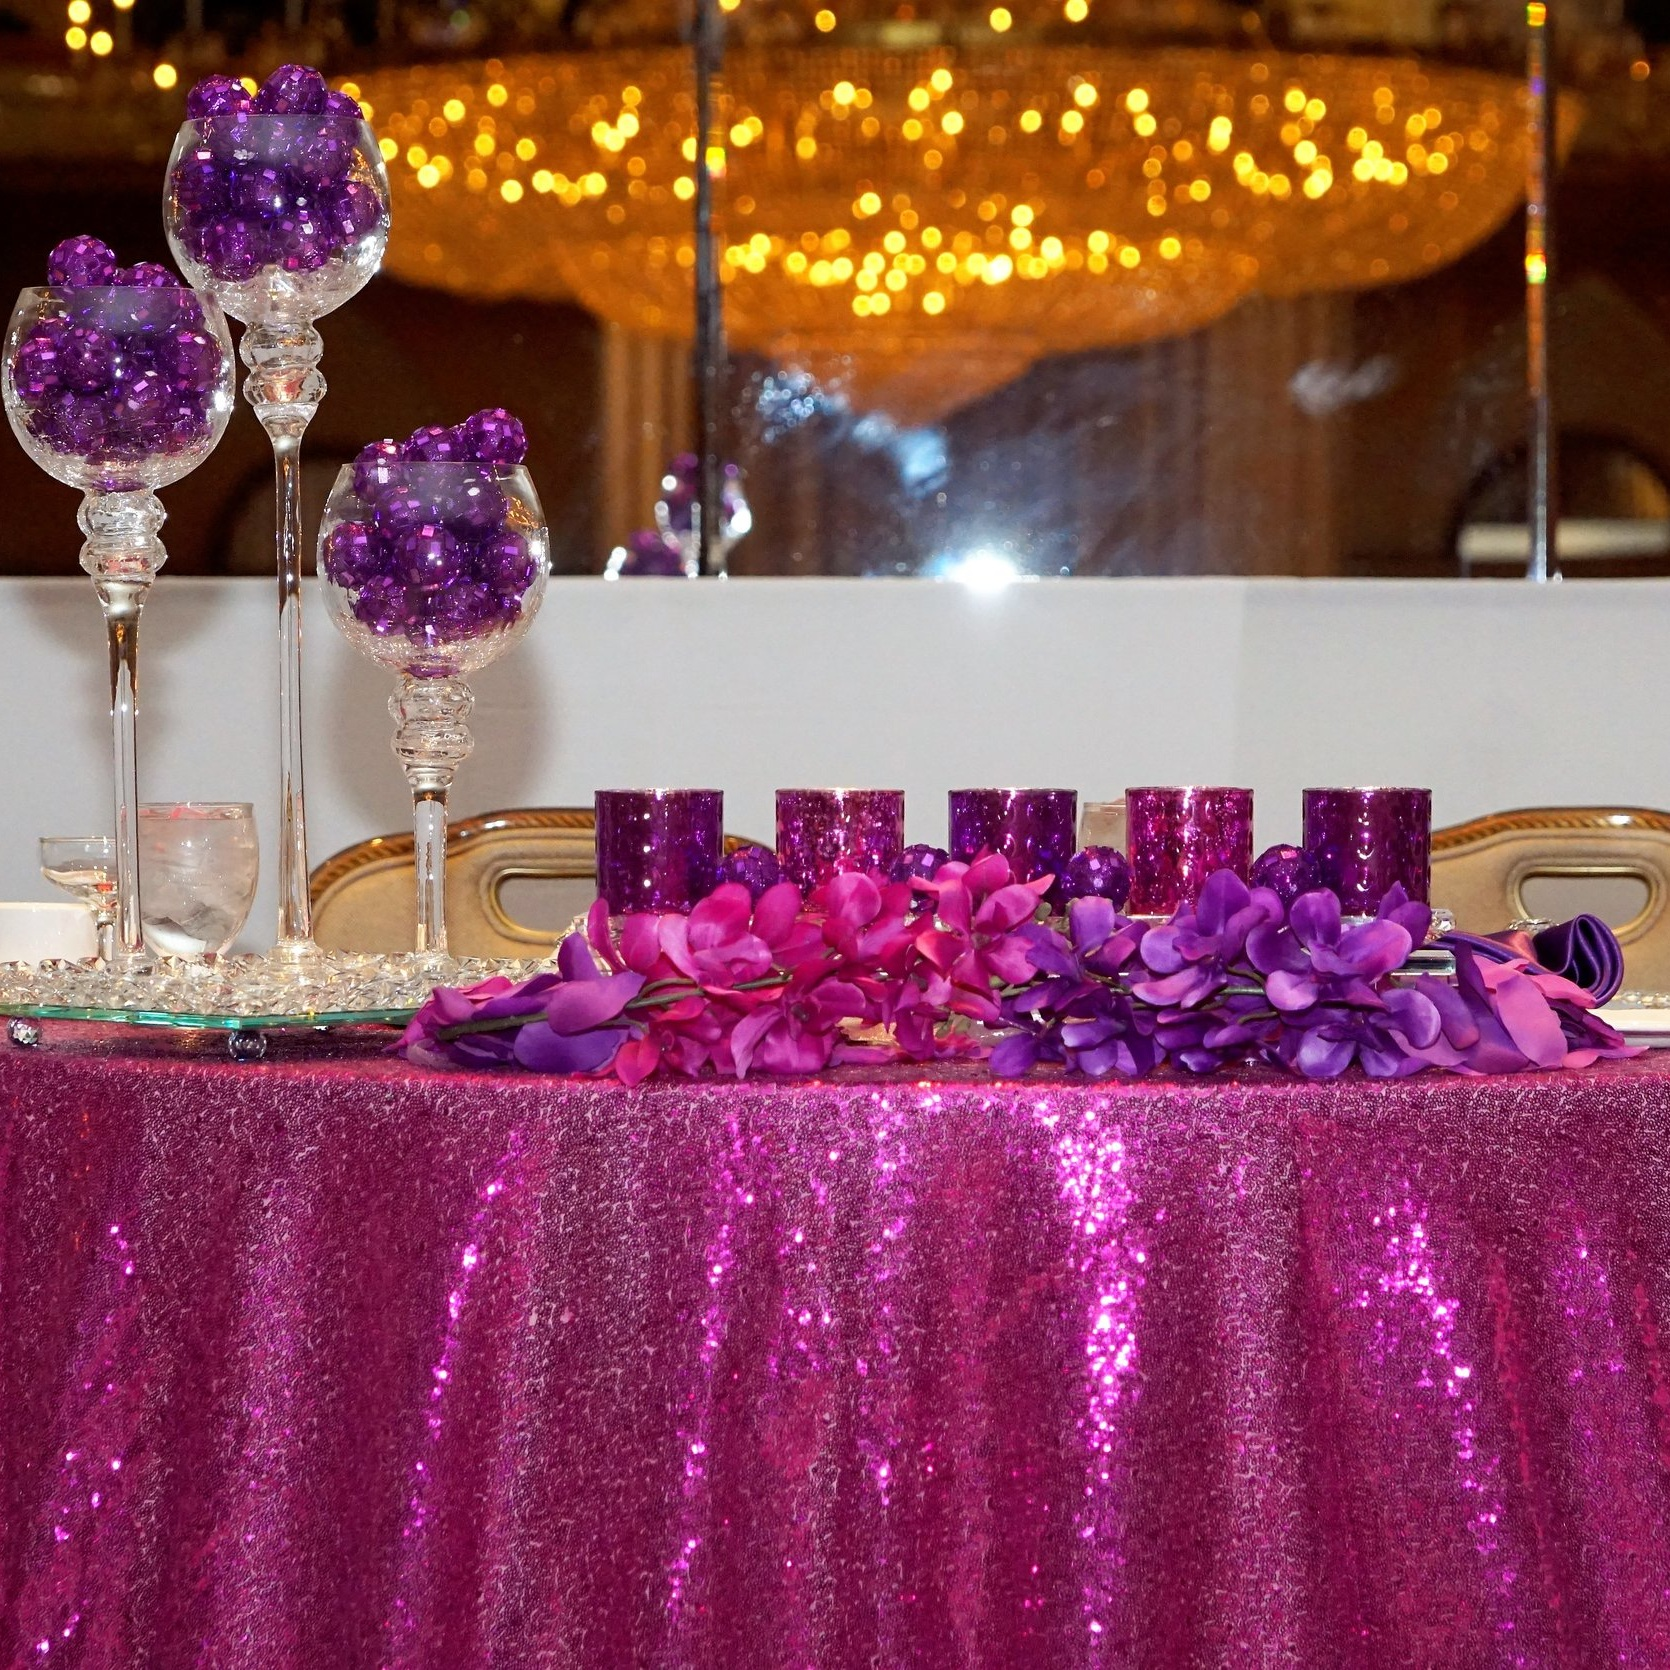 SEQUIN TABLECLOTH (MULTIPLE SIZES)   Colors Available: White, Gold, Silver, Mint, Blush Pink, Fuchsia, Royal Blue, Red, Purple.     Contact us for pricing & availability